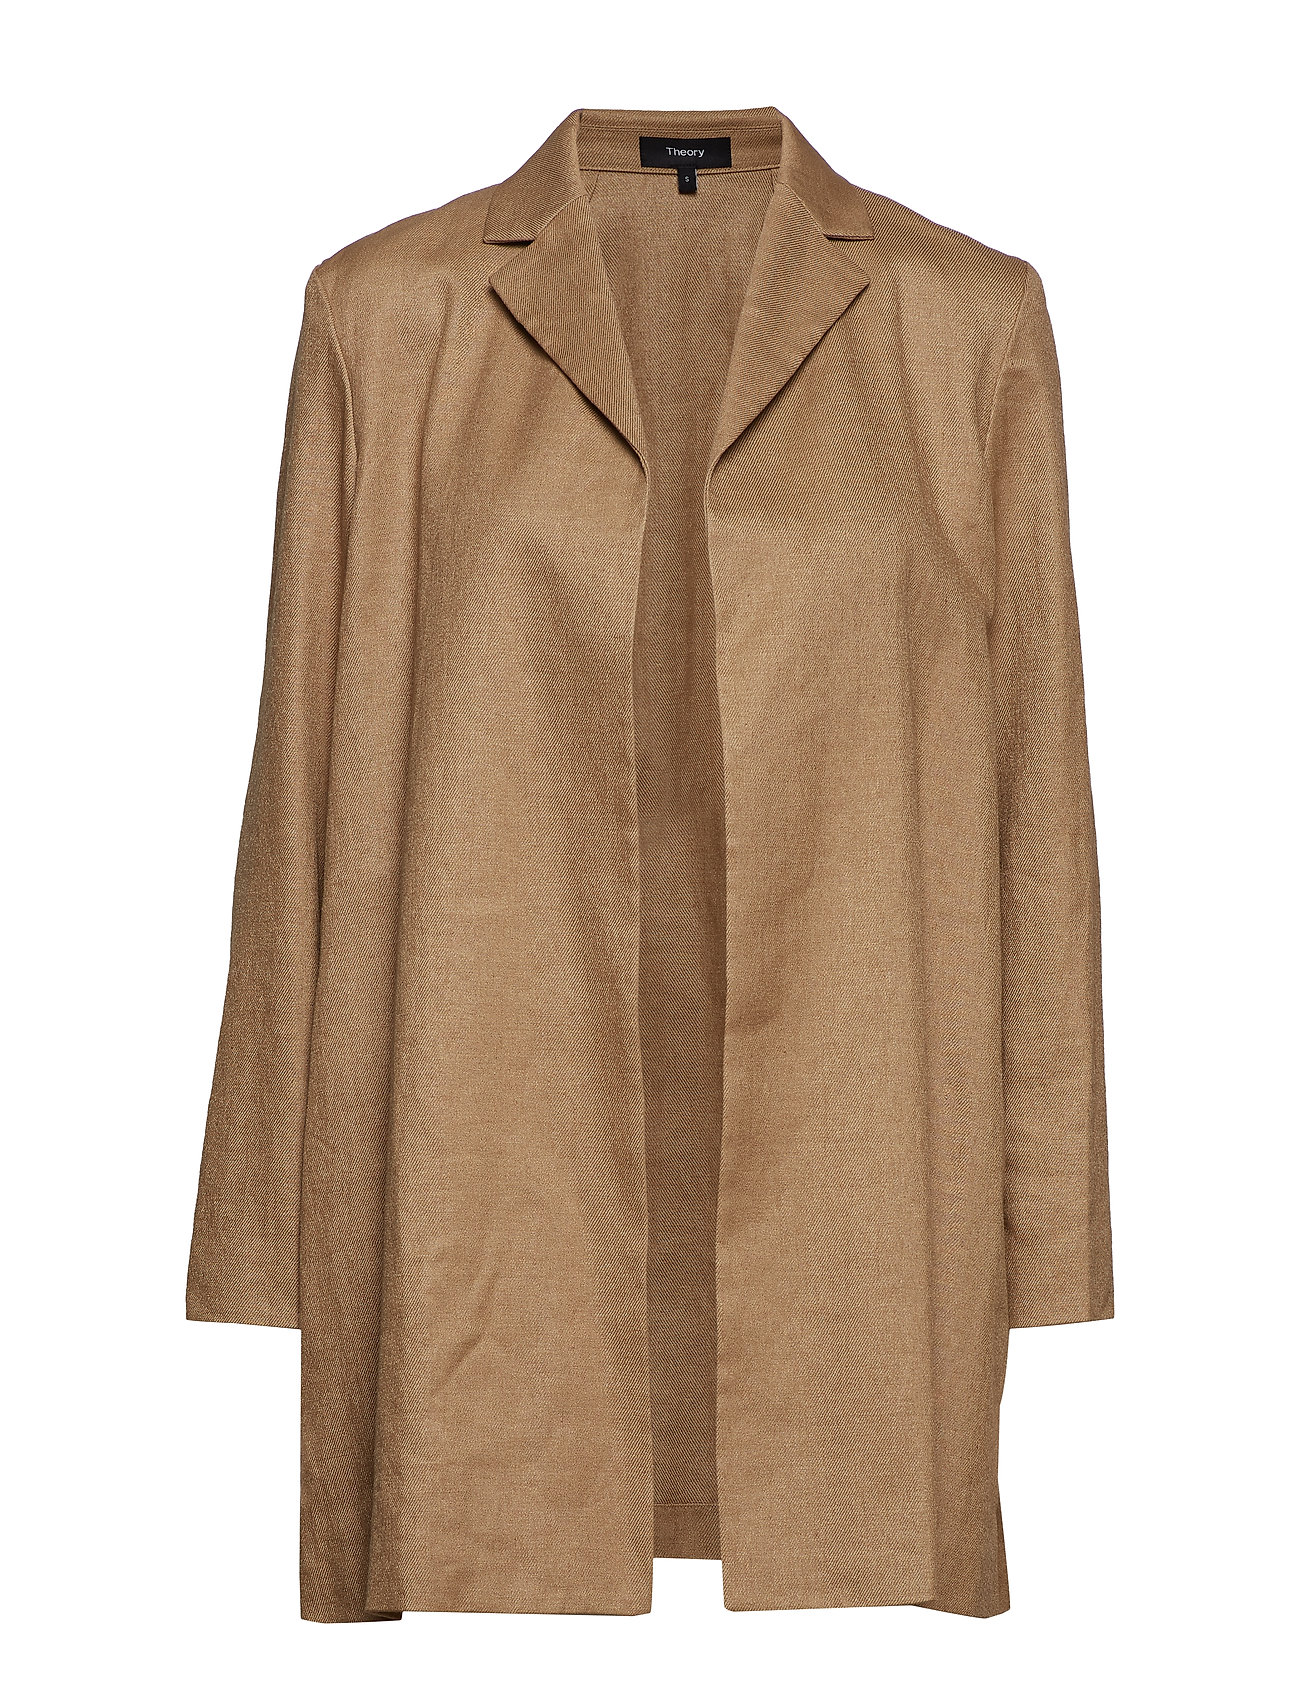 luxe Overlay Linenhay Overlay luxe BeigeTheory Linenhay H2WIE9D